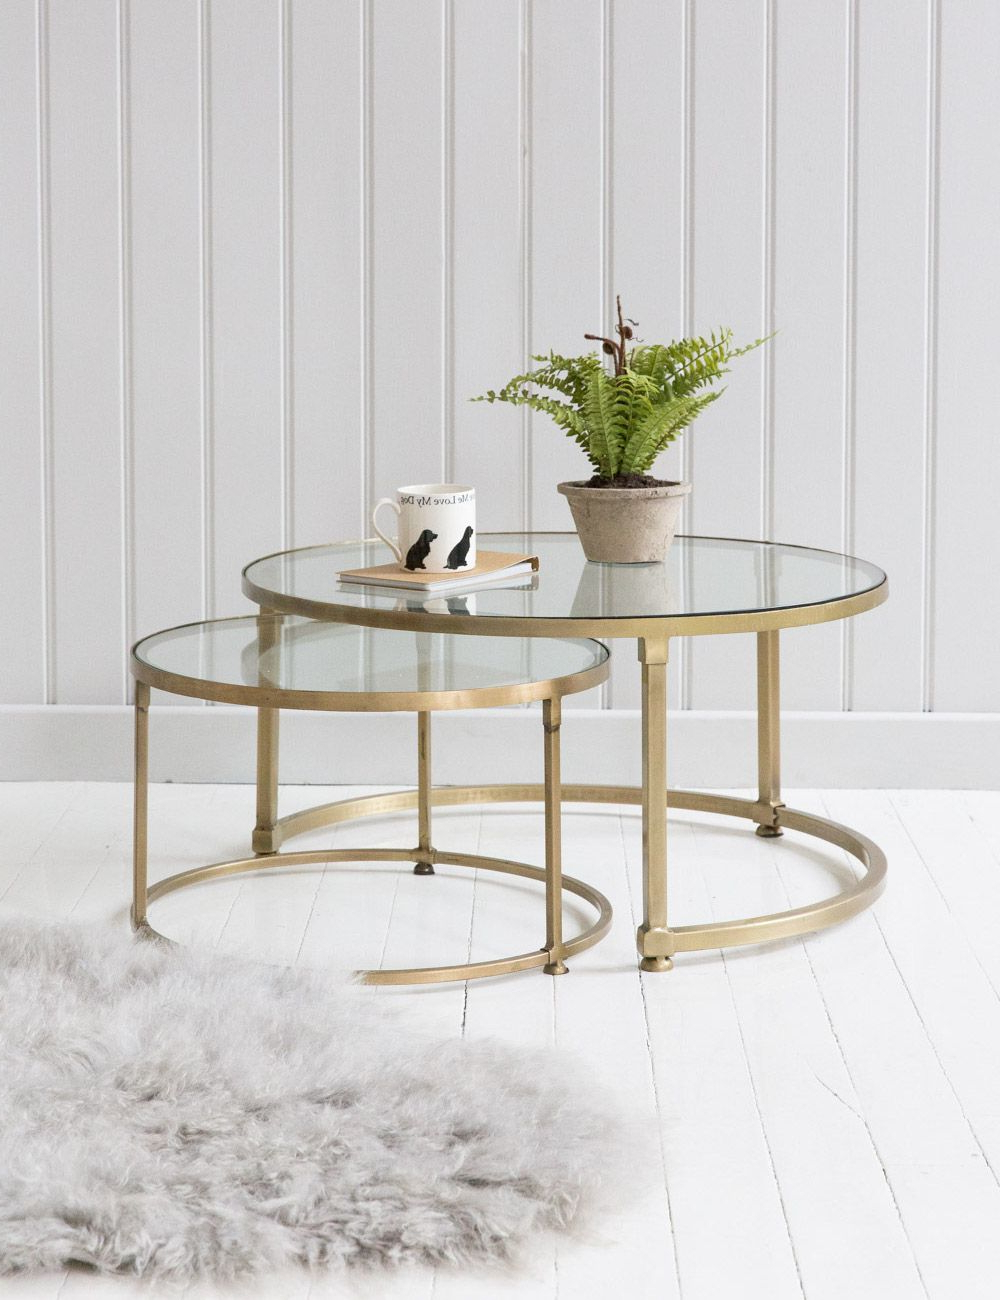 House Decor Intended For Well Known 2 Tone Grey And White Marble Coffee Tables (View 18 of 20)